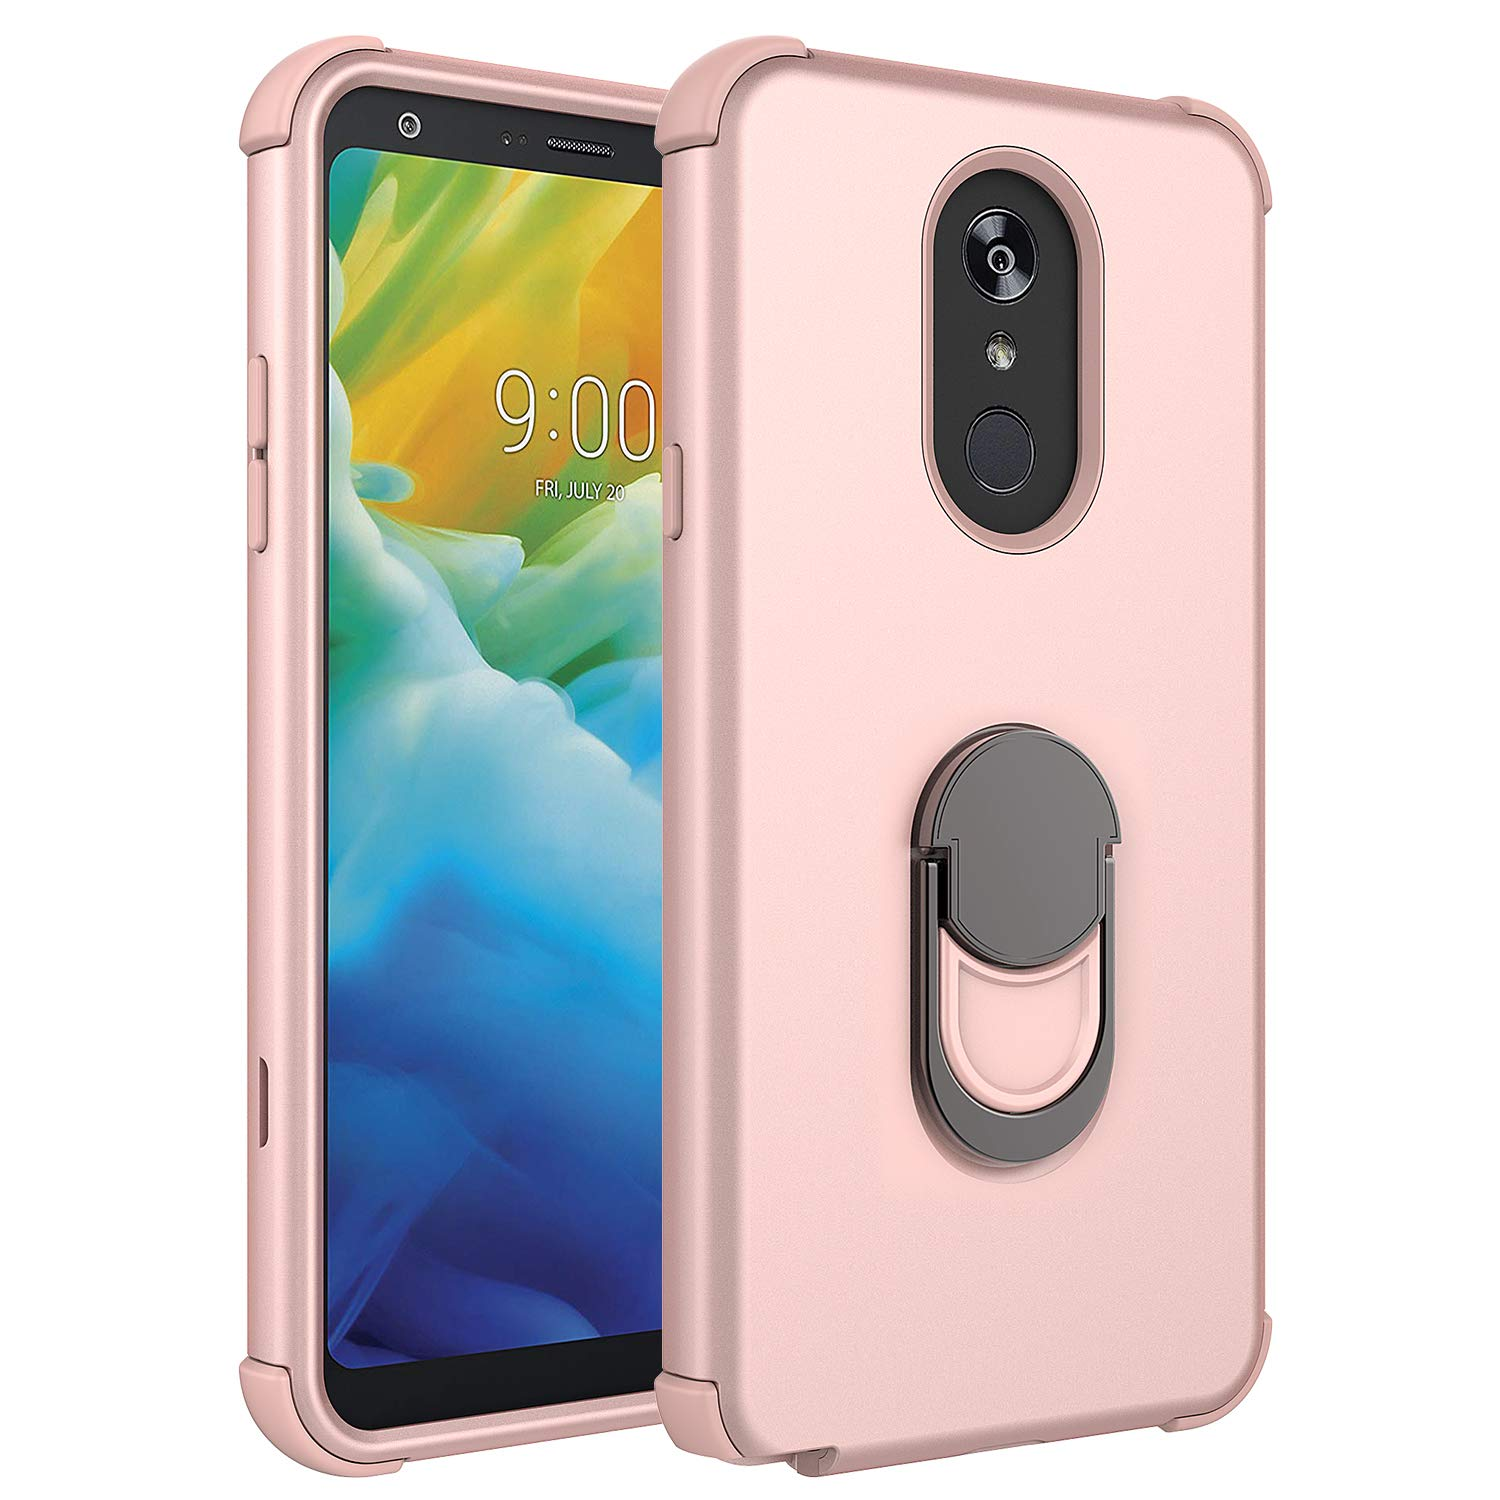 LG Stylo 5 Case, Rosebono 3-Layer Slim Shockproof Hard Cover with Metal Ring Stand Skin Fashion Cute Cover Armor Case for LG Stylo 5 (Rose Gold)